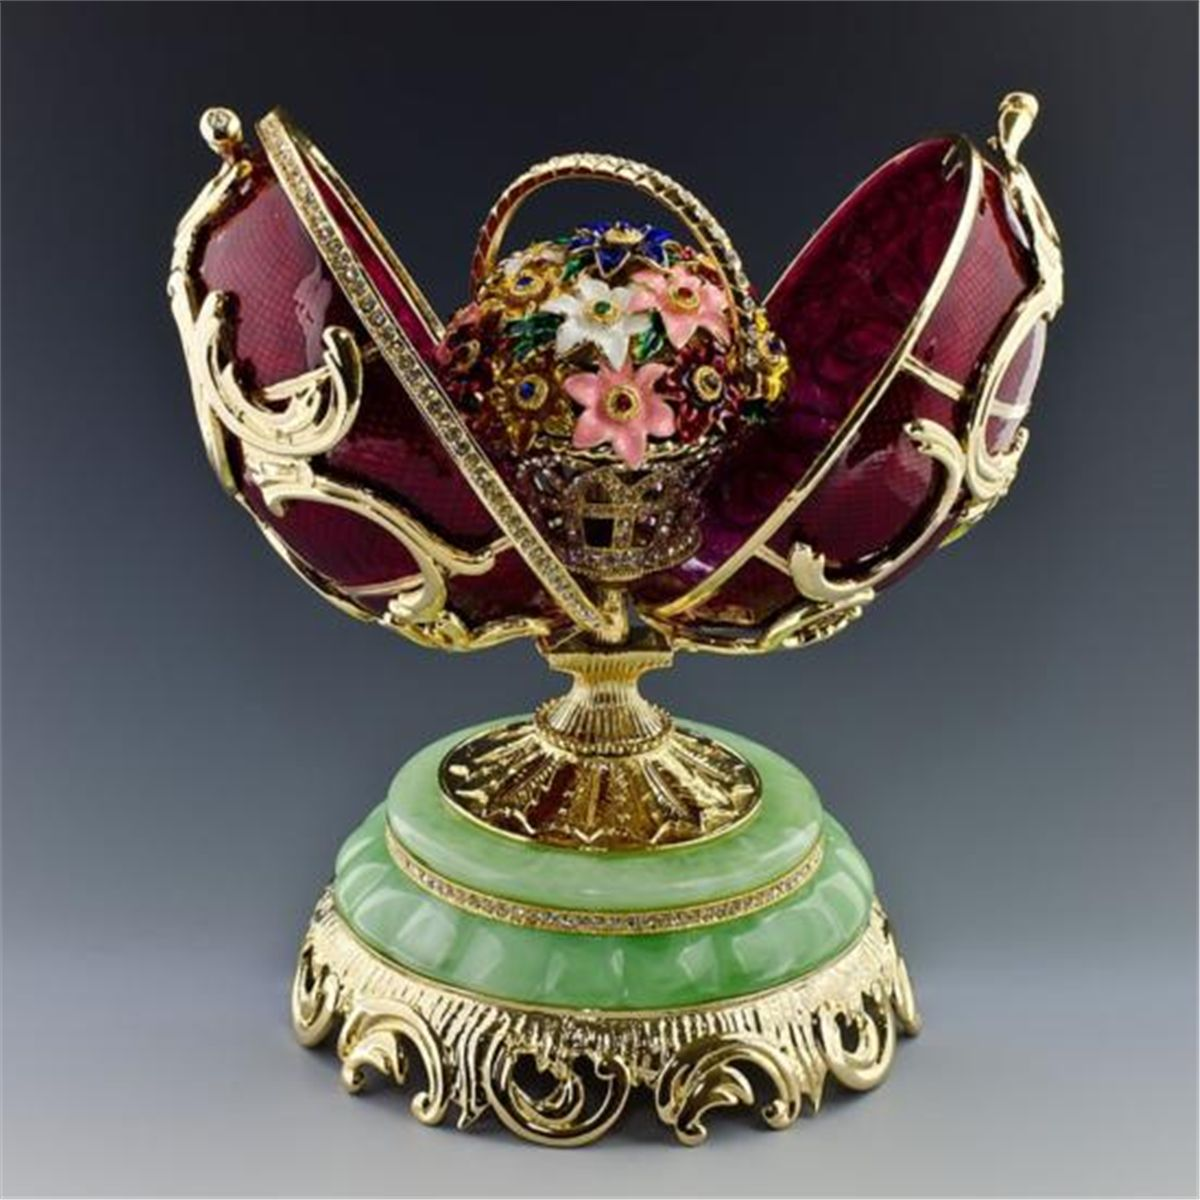 See original new faberg eggs happening now beautifulnow see original new faberg eggs happening now negle Images